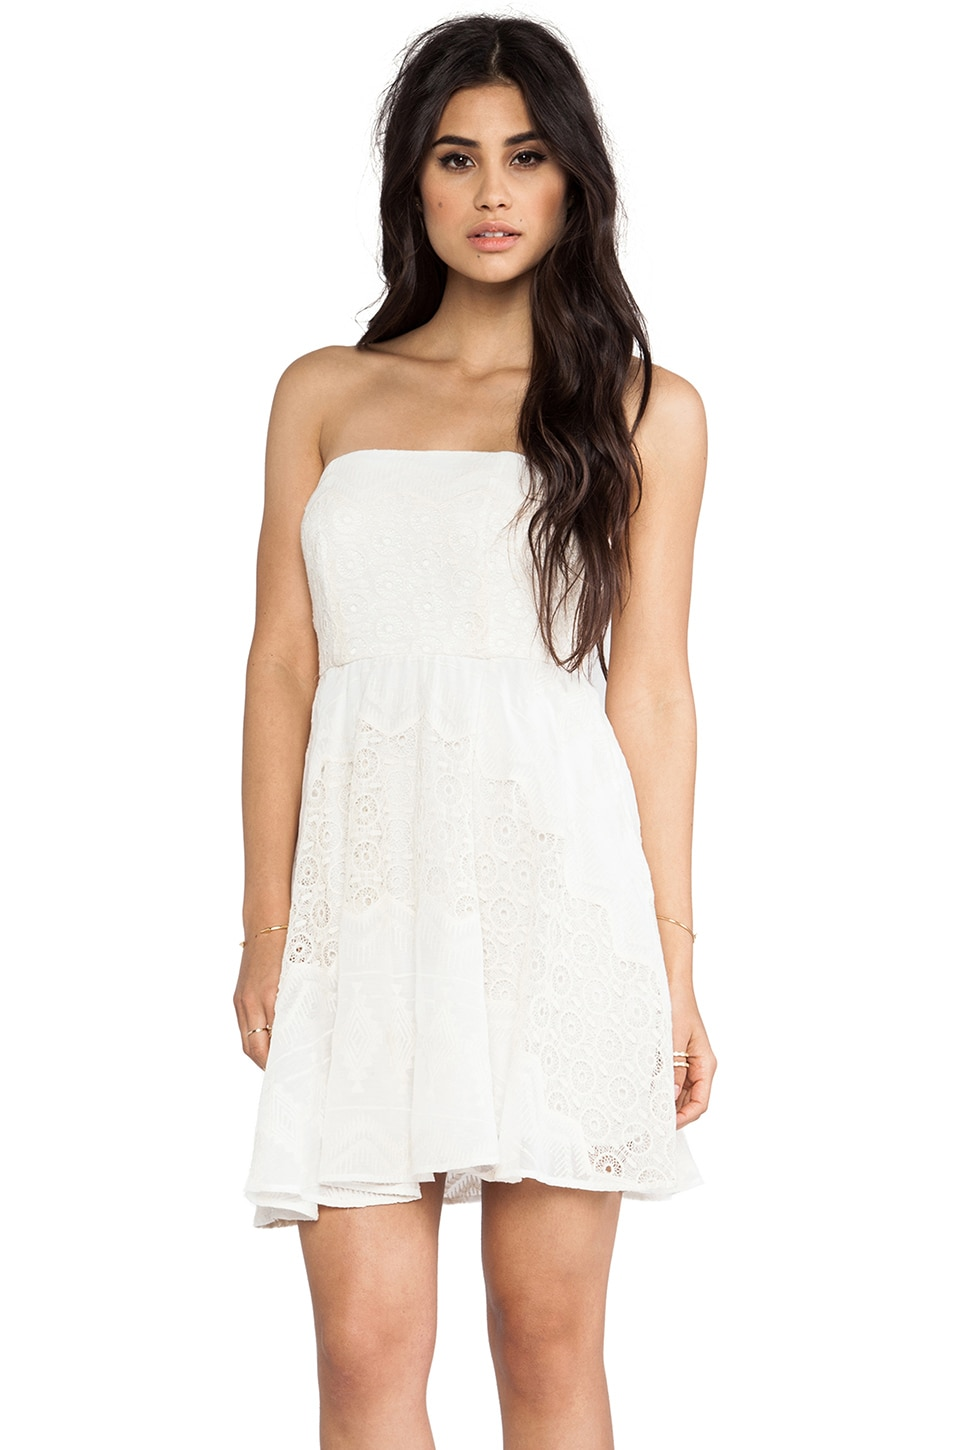 Twelfth Street By Cynthia Vincent Strapless Party Dress in White